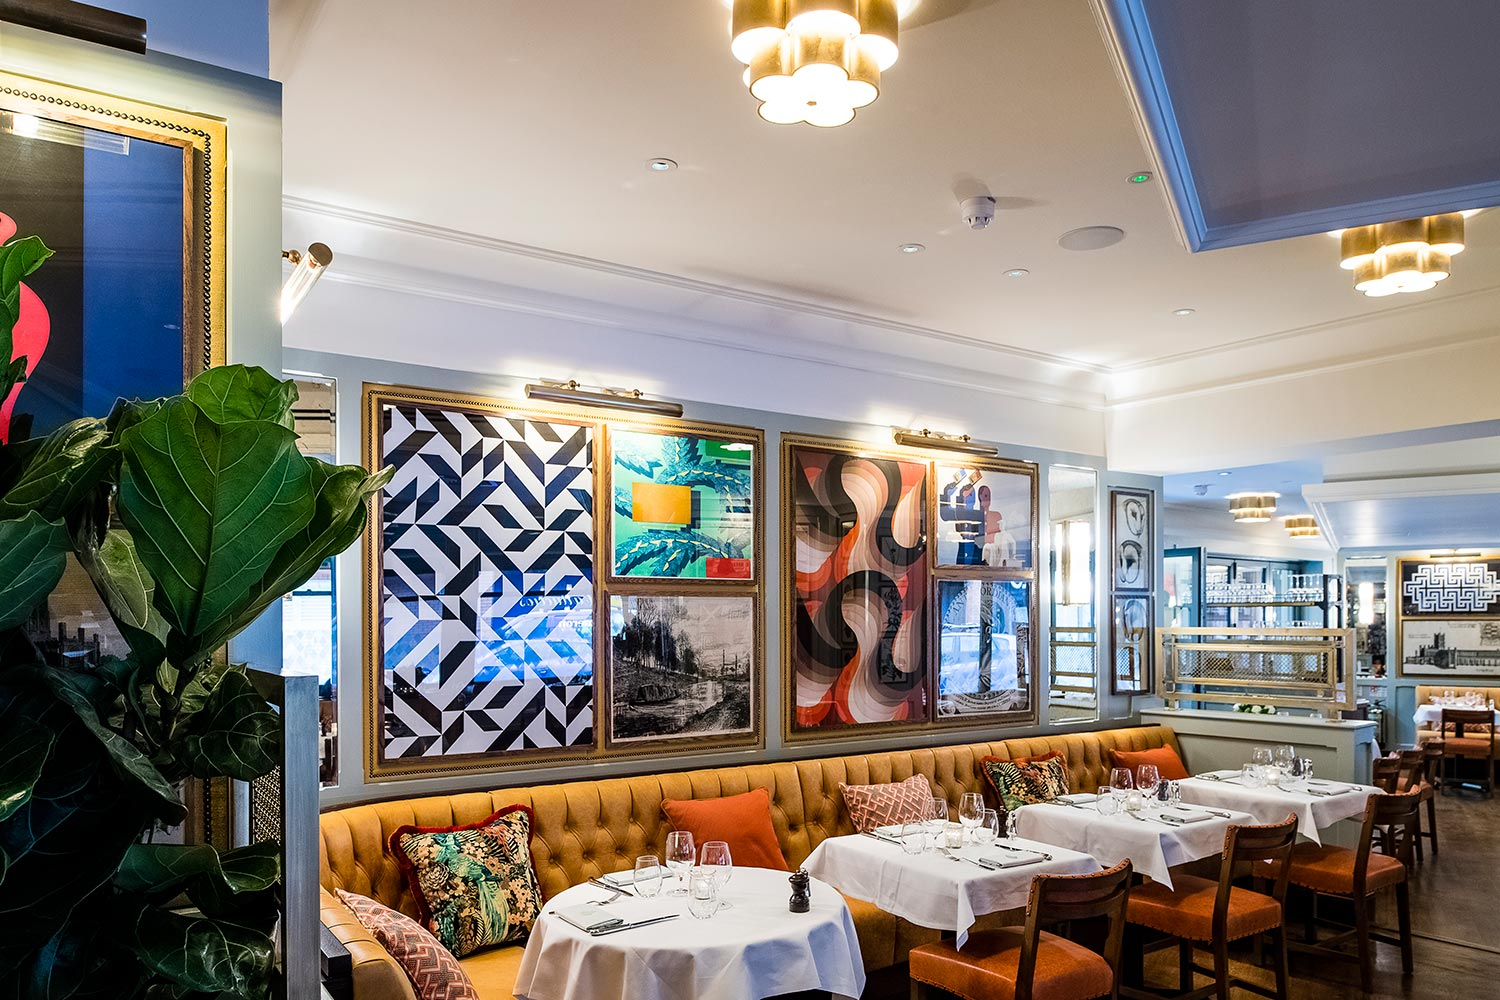 Places to eat in St Albans, The Ivy St Albans Brasserie - The Ivy St Albans Brasserie